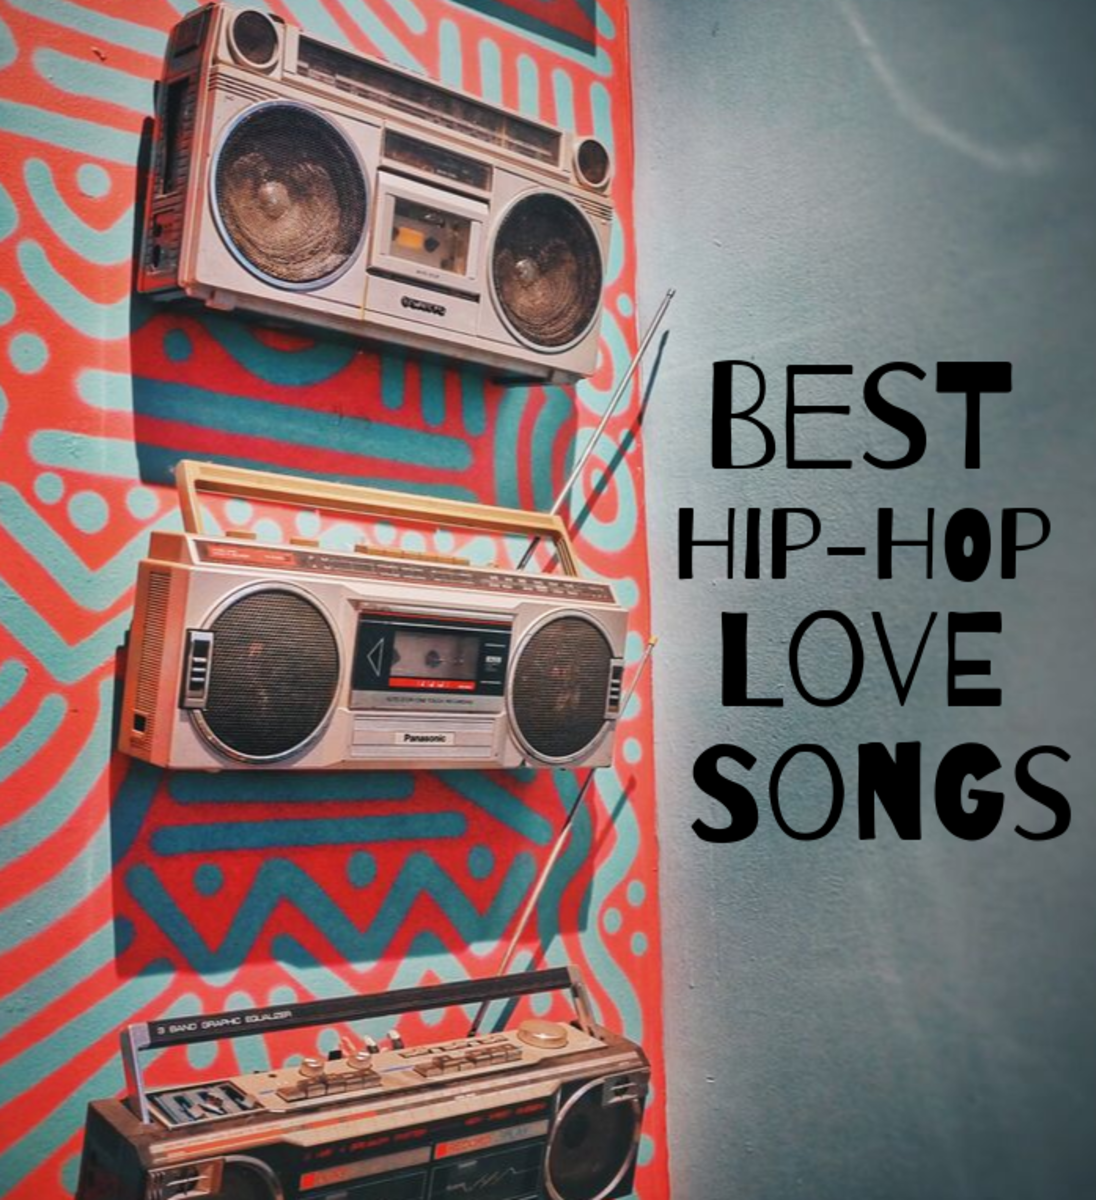 100 Best Hip-Hop Love Songs